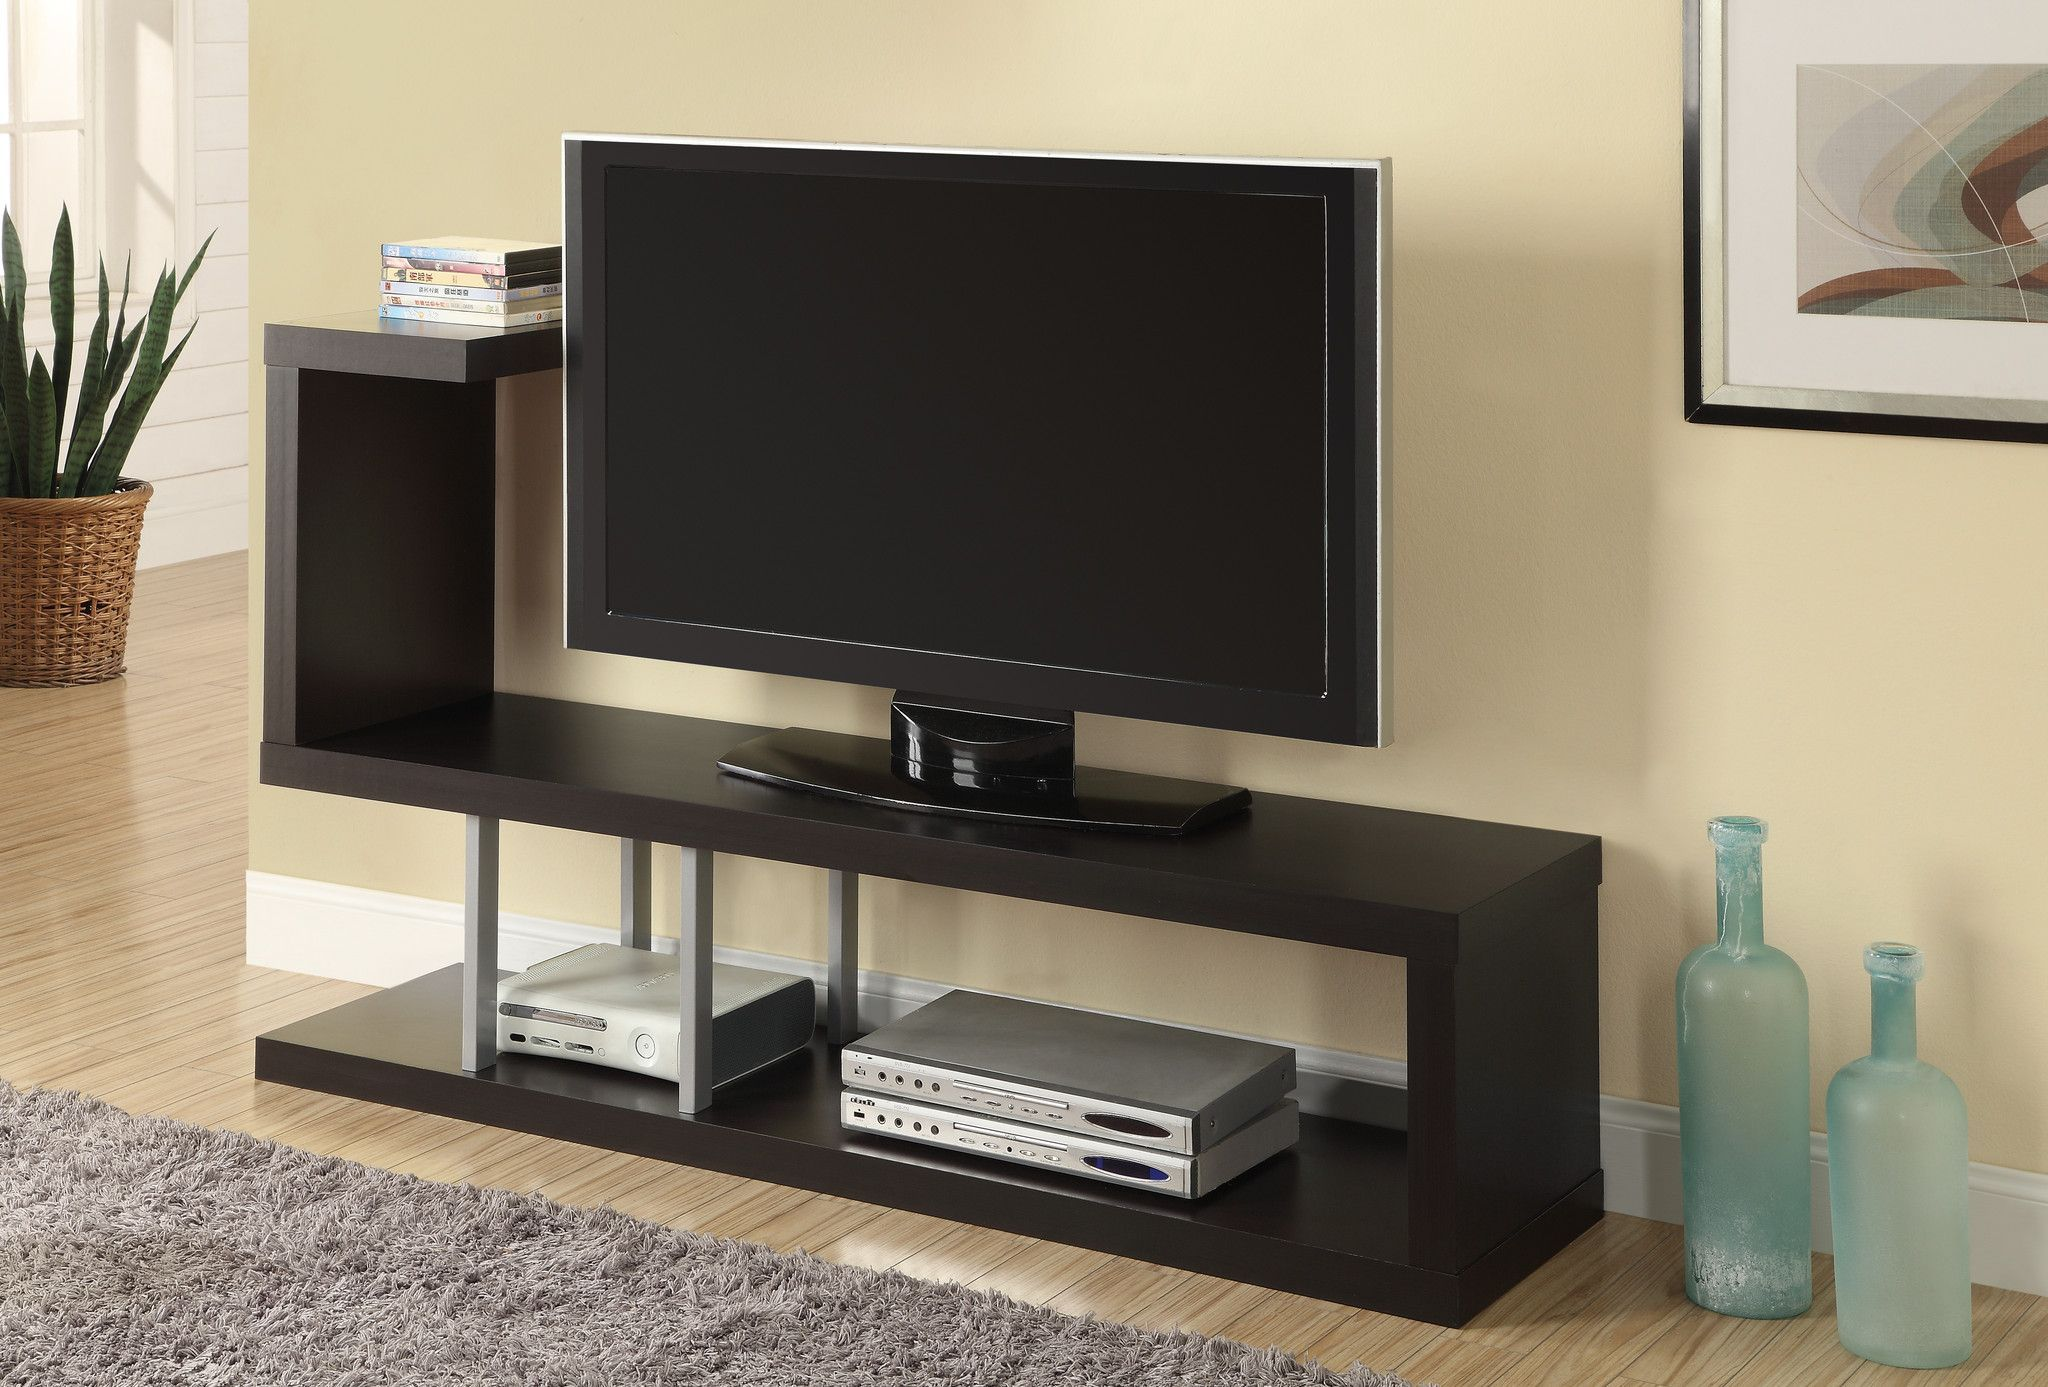 Hollow core Cappuccino TV Console Overstock Shopping